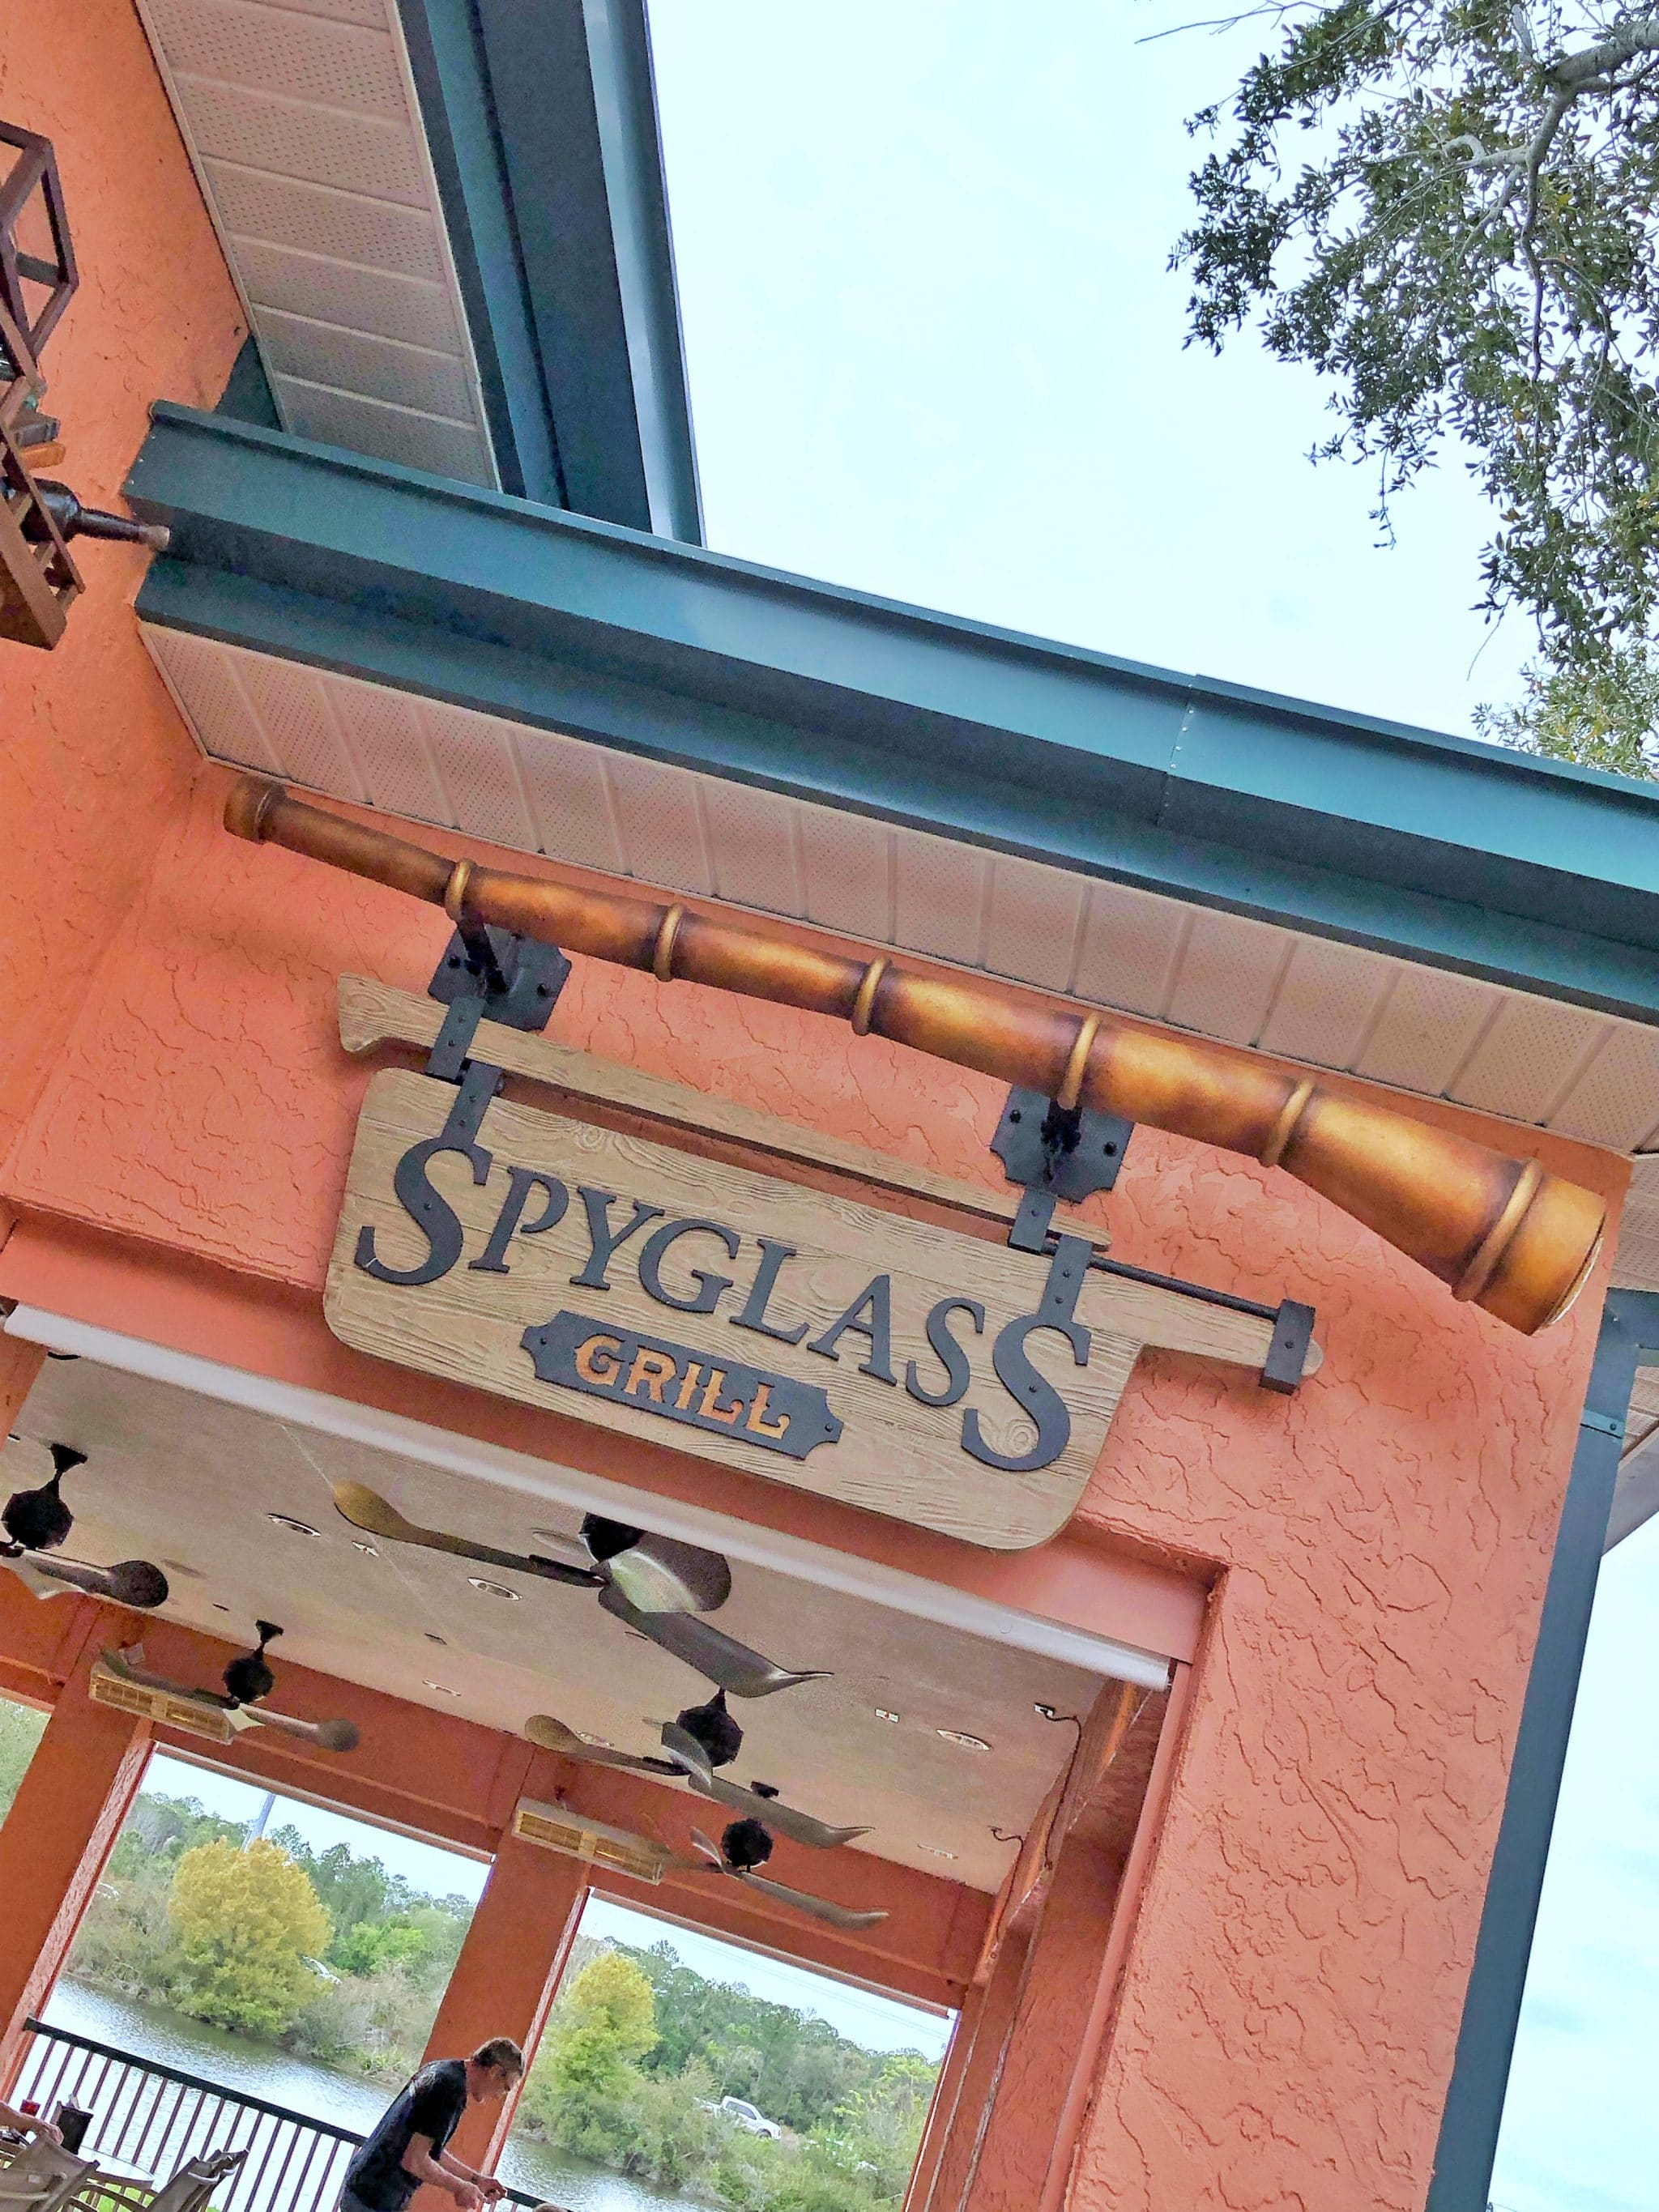 Spyglass Grill at Disney's Caribbean Beach Resort at Walt Disney World